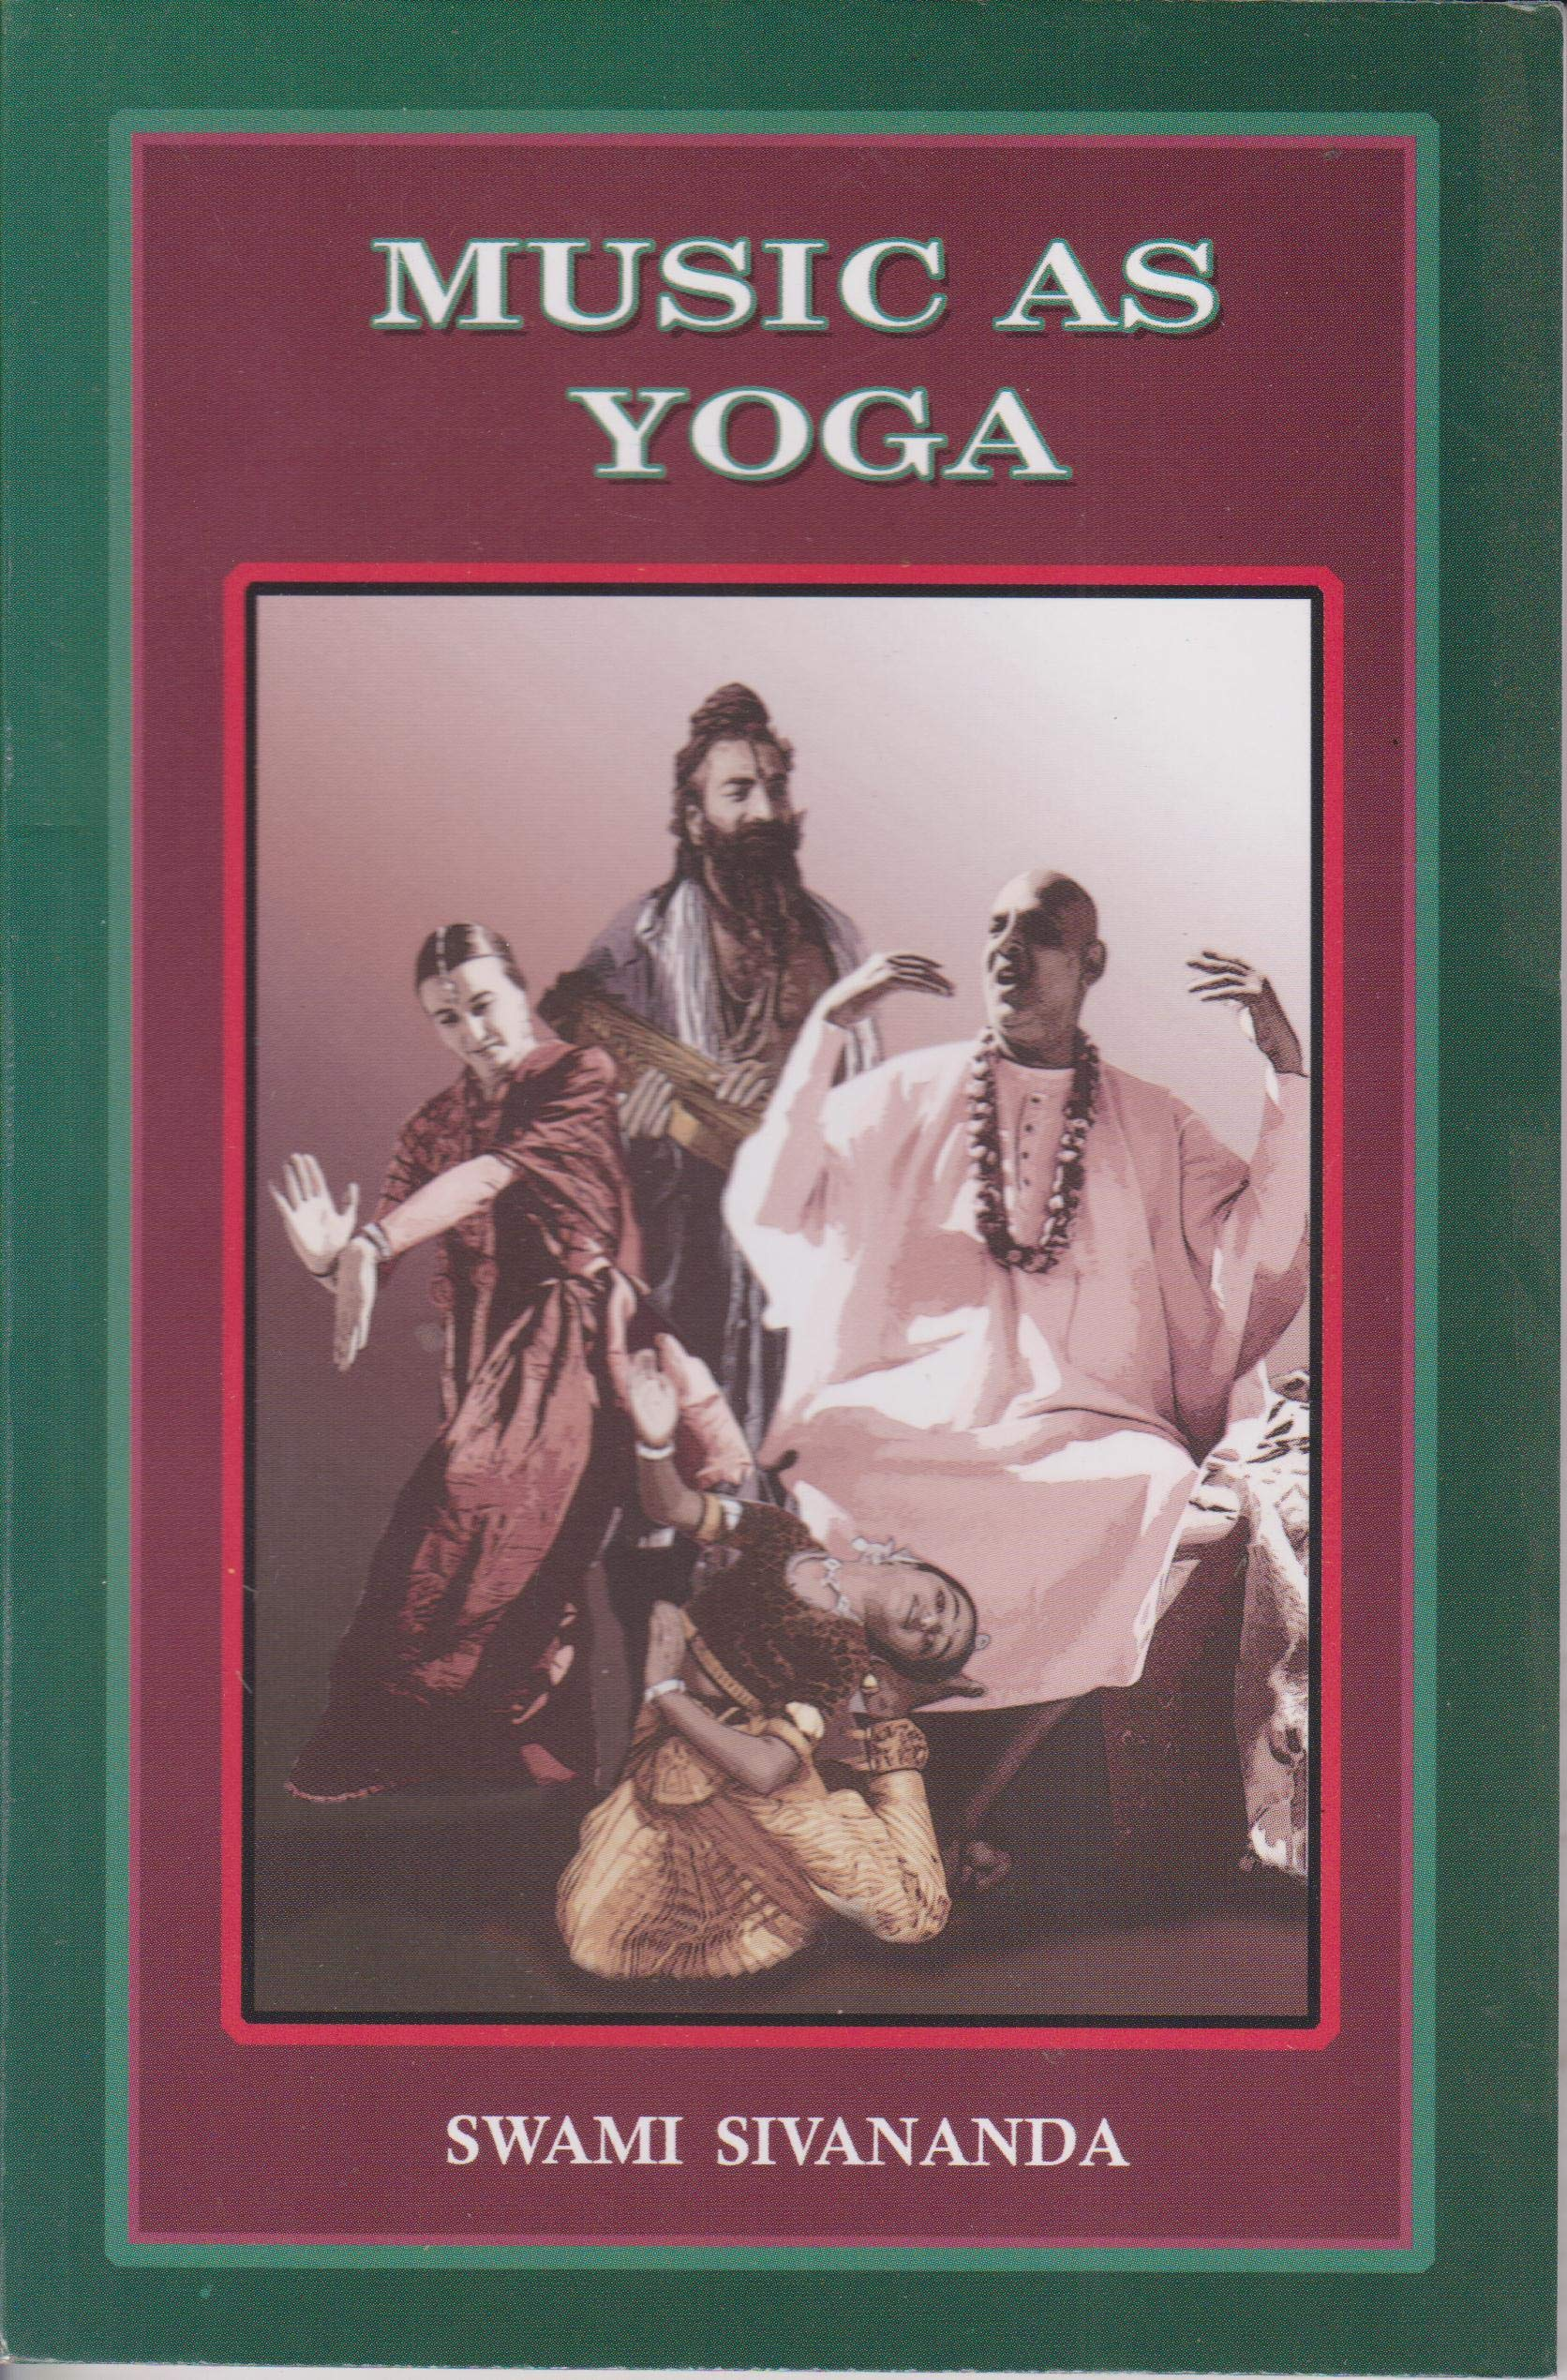 Buy Music as Yoga Book Online at Low Prices in India | Music as Yoga  Reviews & Ratings - Amazon.in